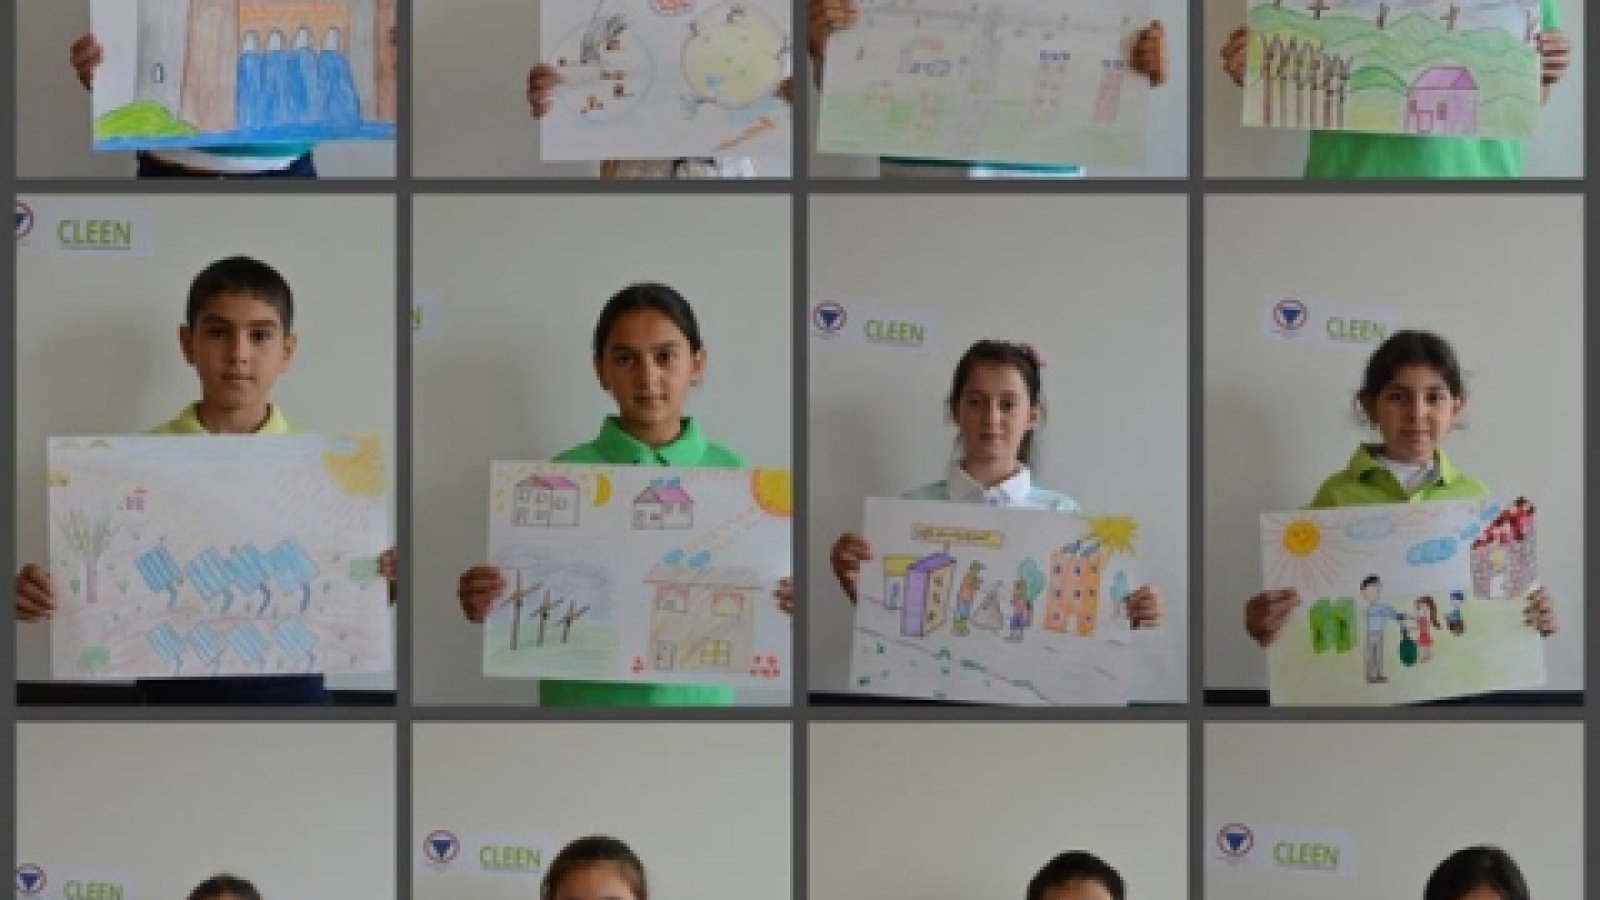 Armenia: EU project inspires kids to care about clean environment